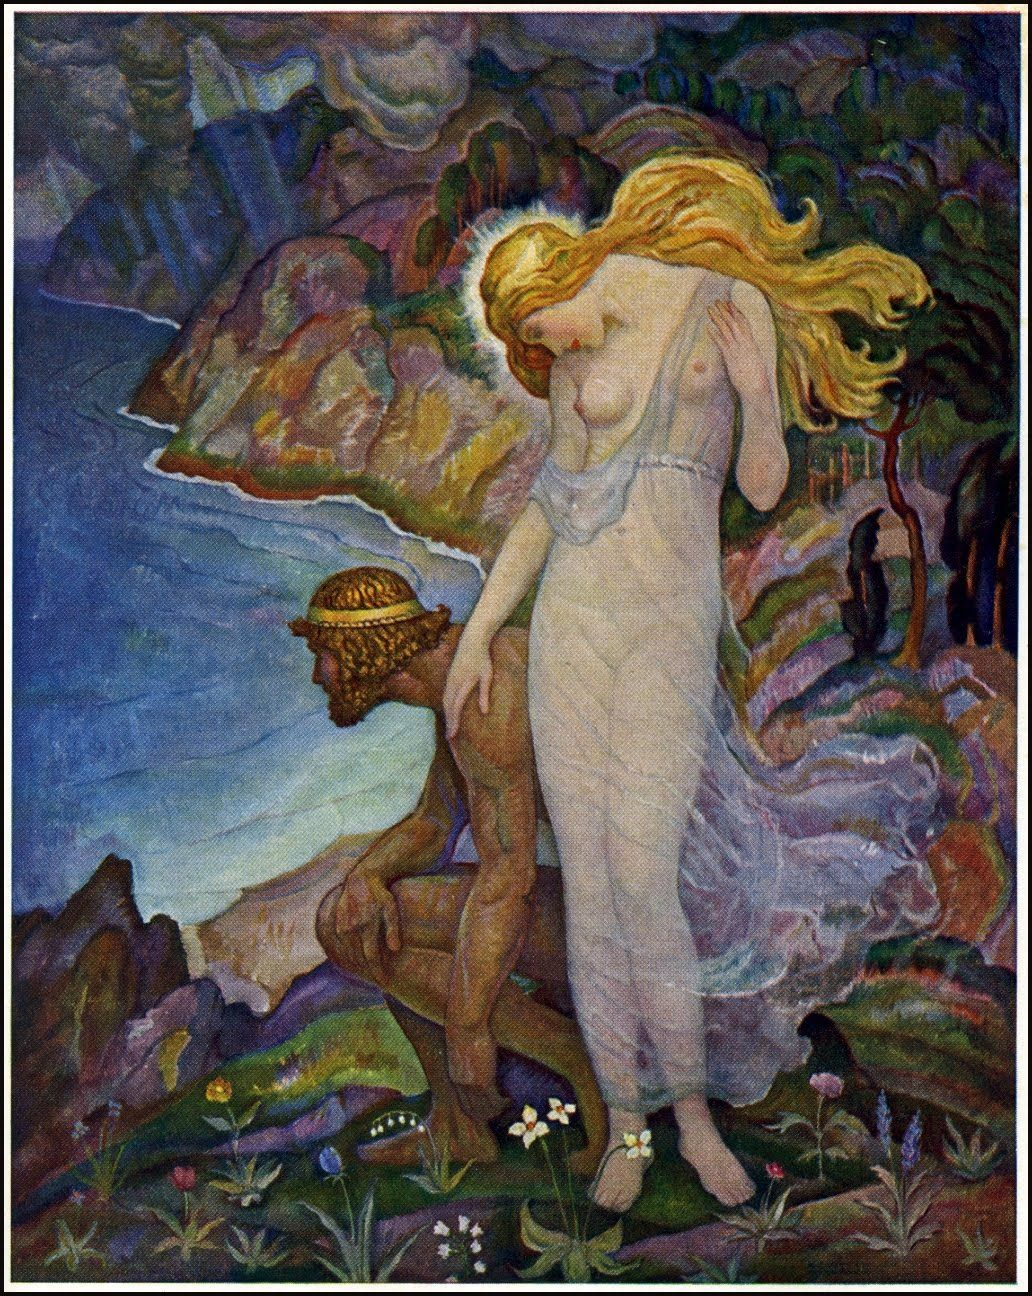 newell convers wyeth odysseus and calypso kappa alpha lambda upsilon psi  newell convers wyeth 1882 1945 odysseus and calypso kappaalphalambdaupsilonpsi974